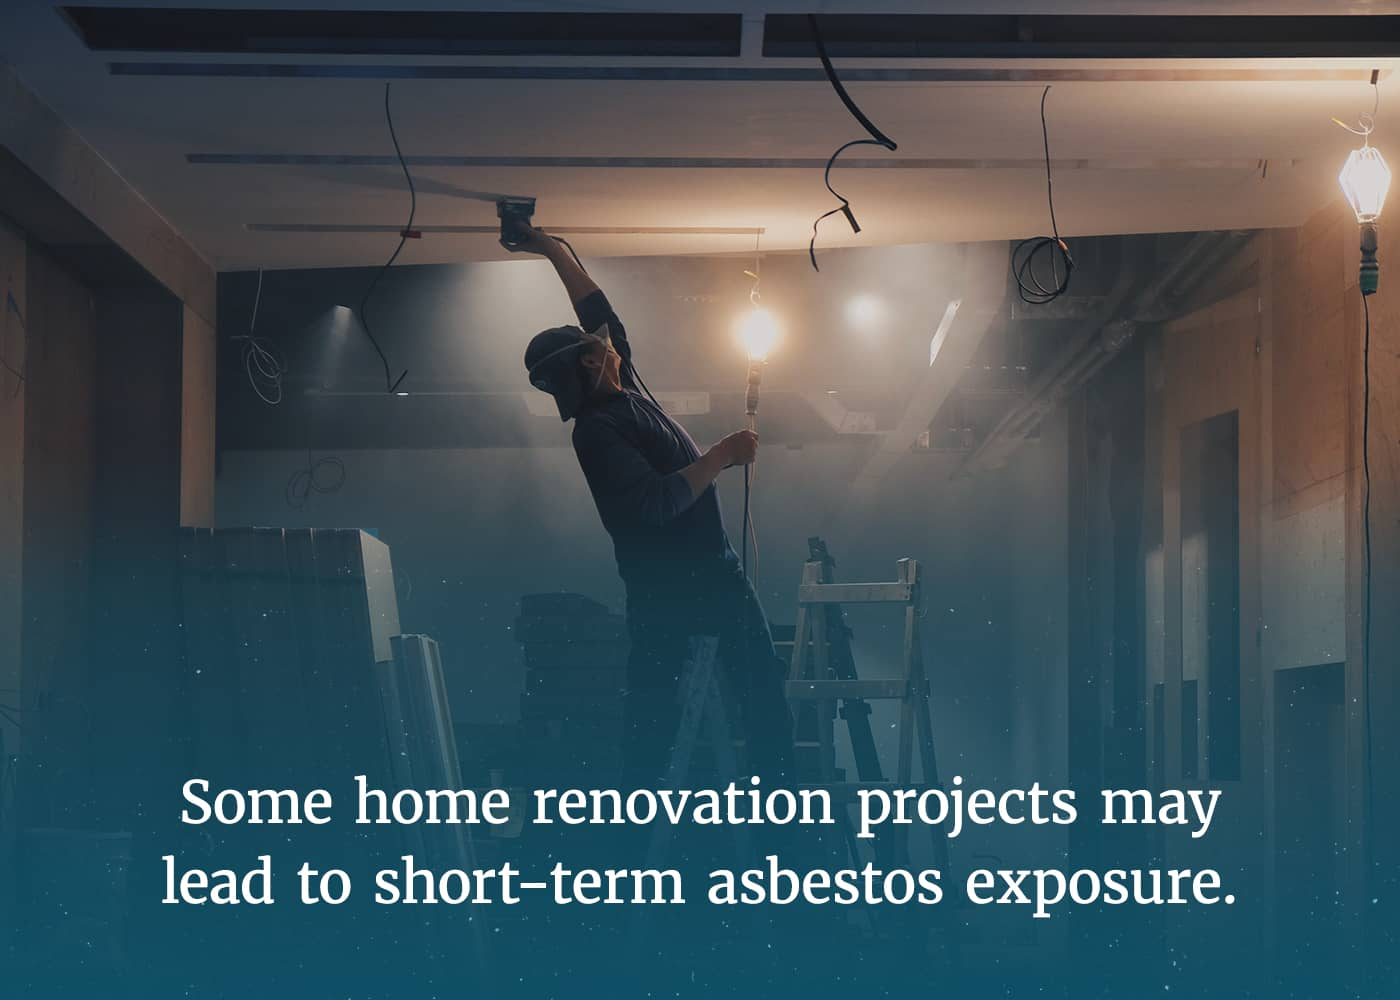 Some home renovation projects can lead to short-term asbestos exposure.